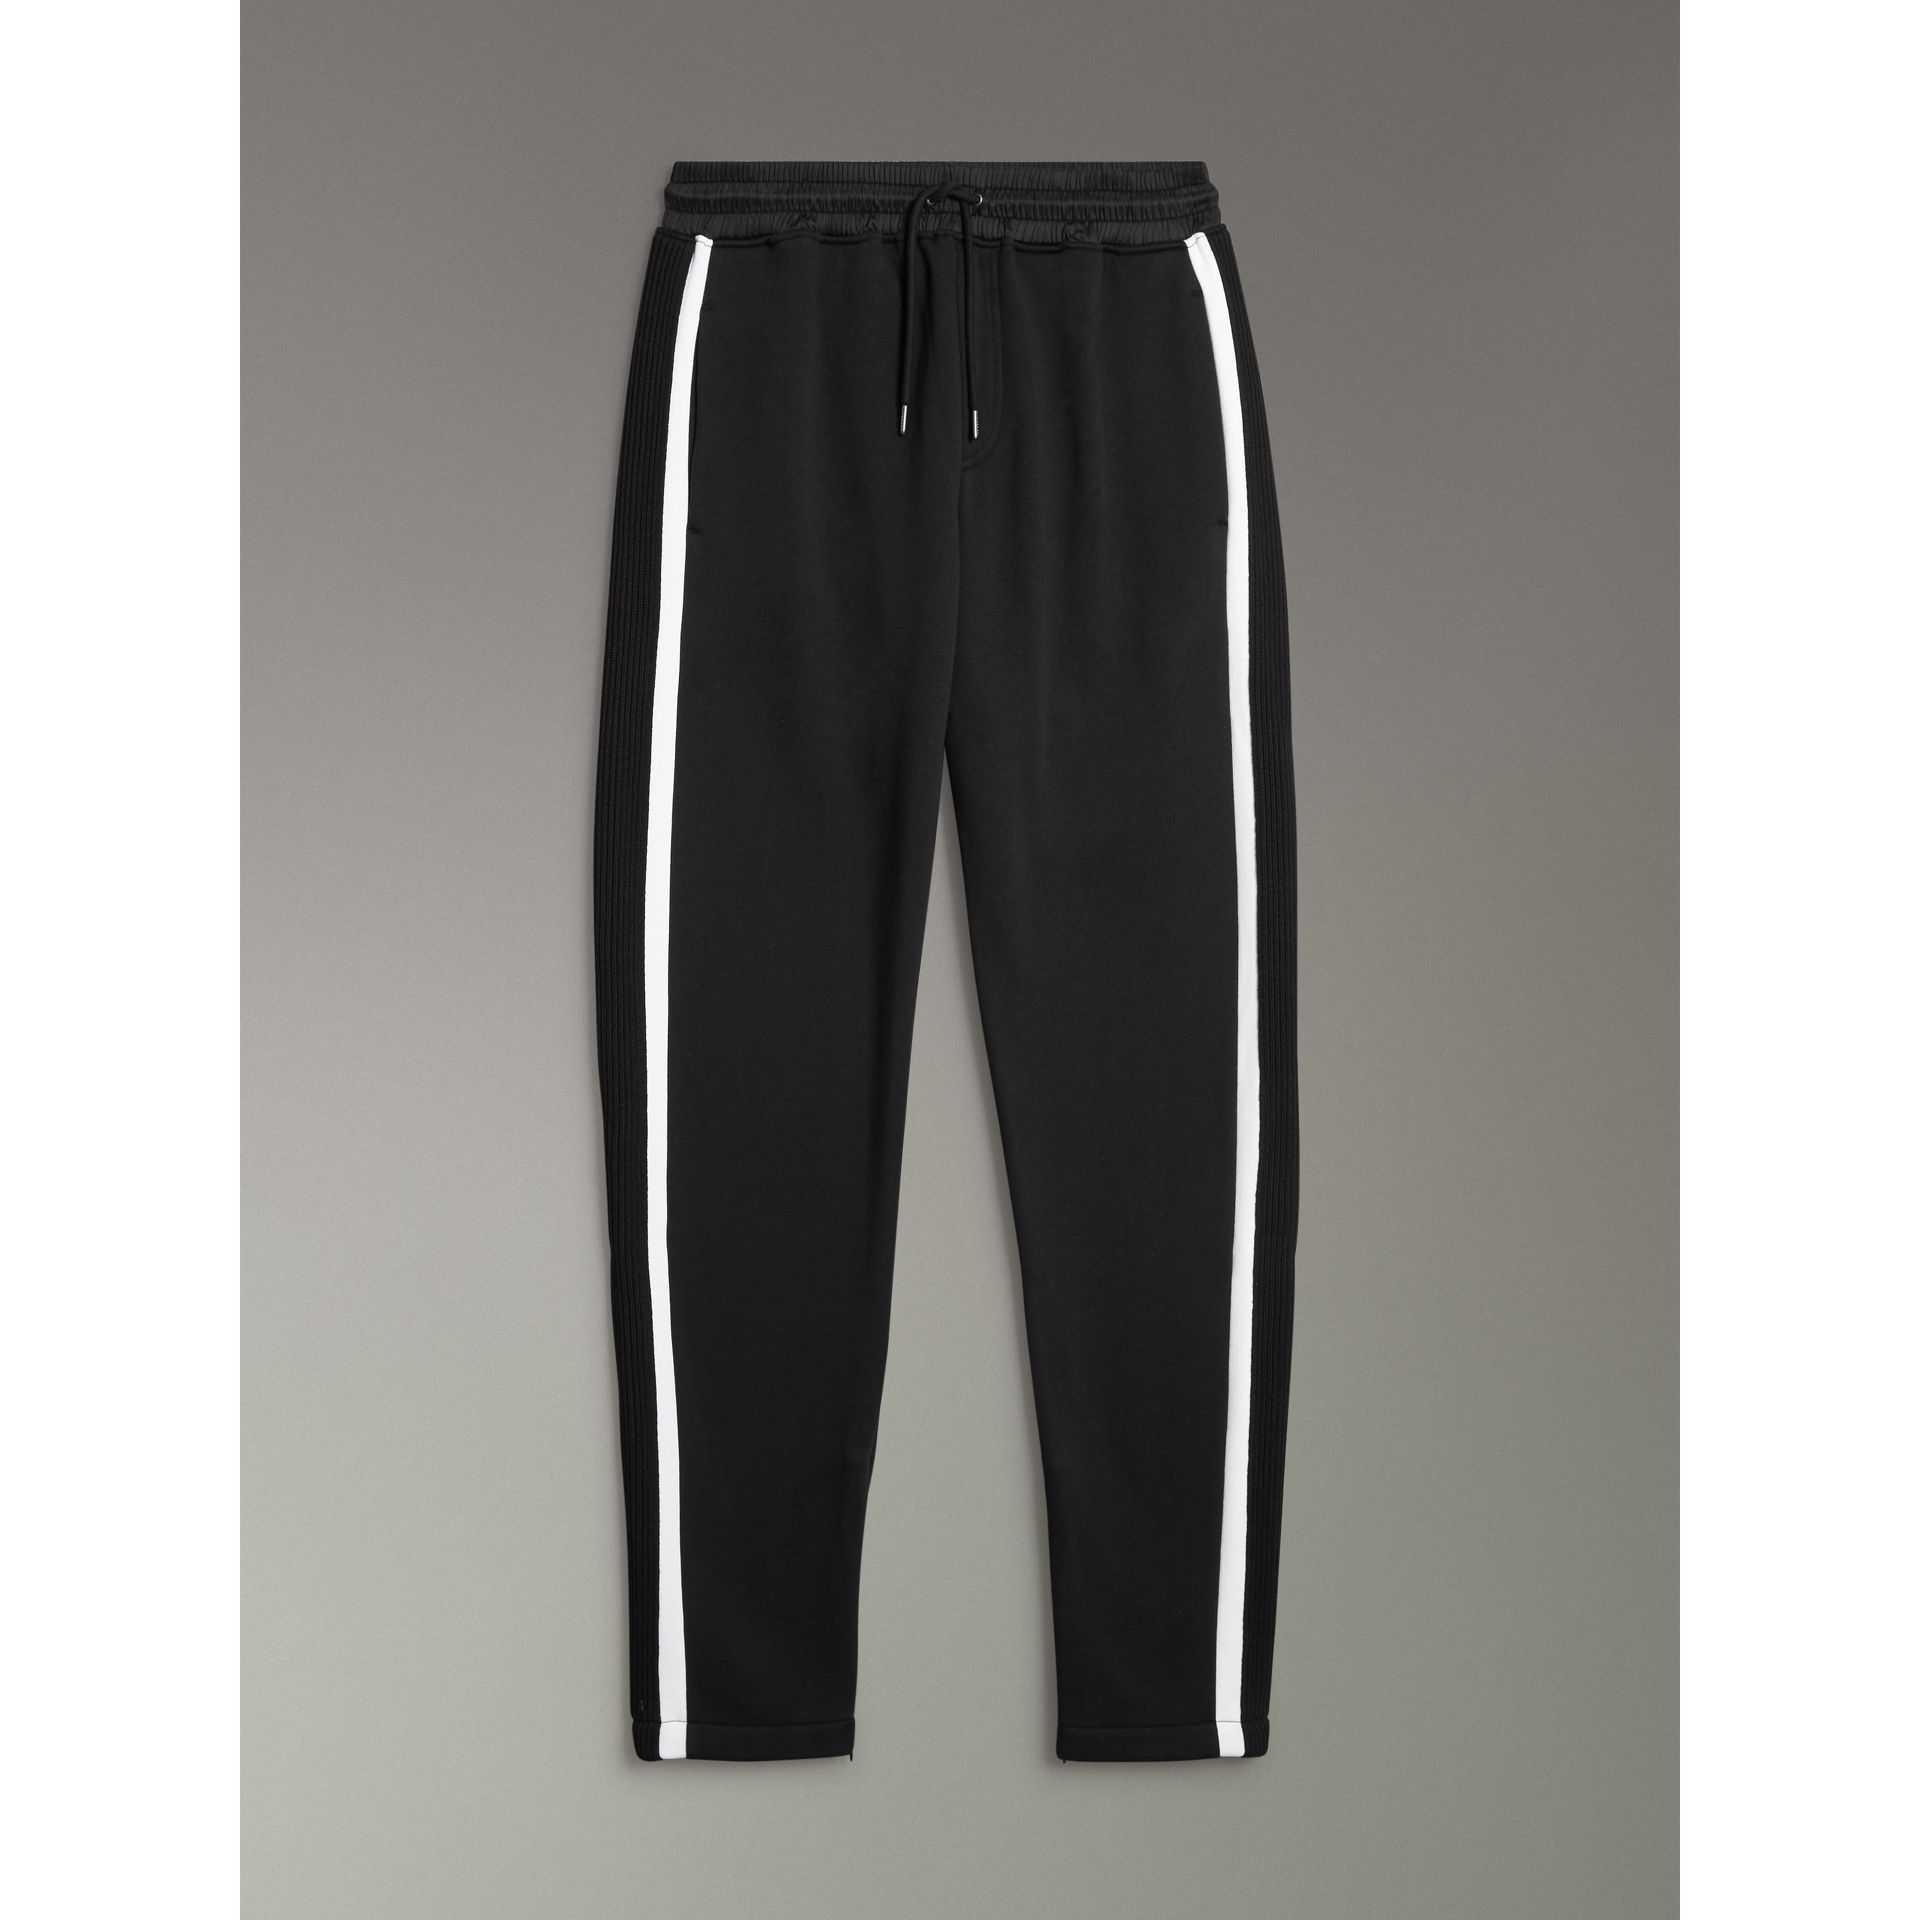 Stripe Detail Cotton Blend Jersey Sweatpants in Black - Men | Burberry United States - gallery image 3